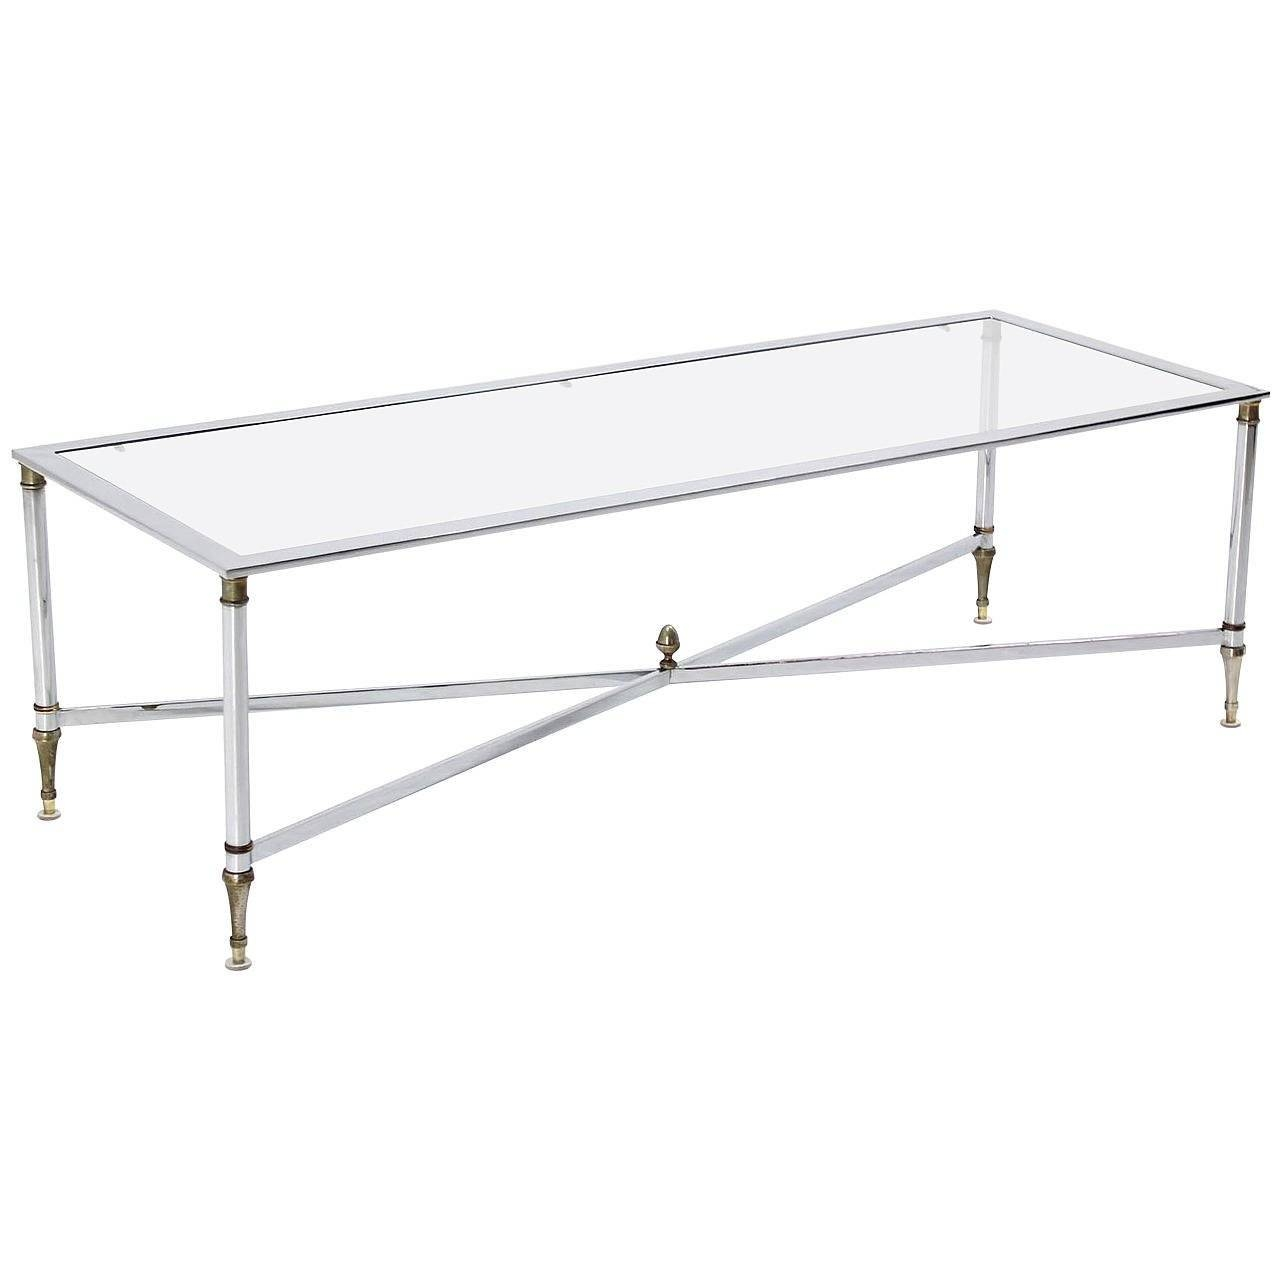 Chrome Brass X Base Glass Top Long Rectangle Coffee Table For Sale inside Rectangle Glass Chrome Coffee Tables (Image 4 of 30)